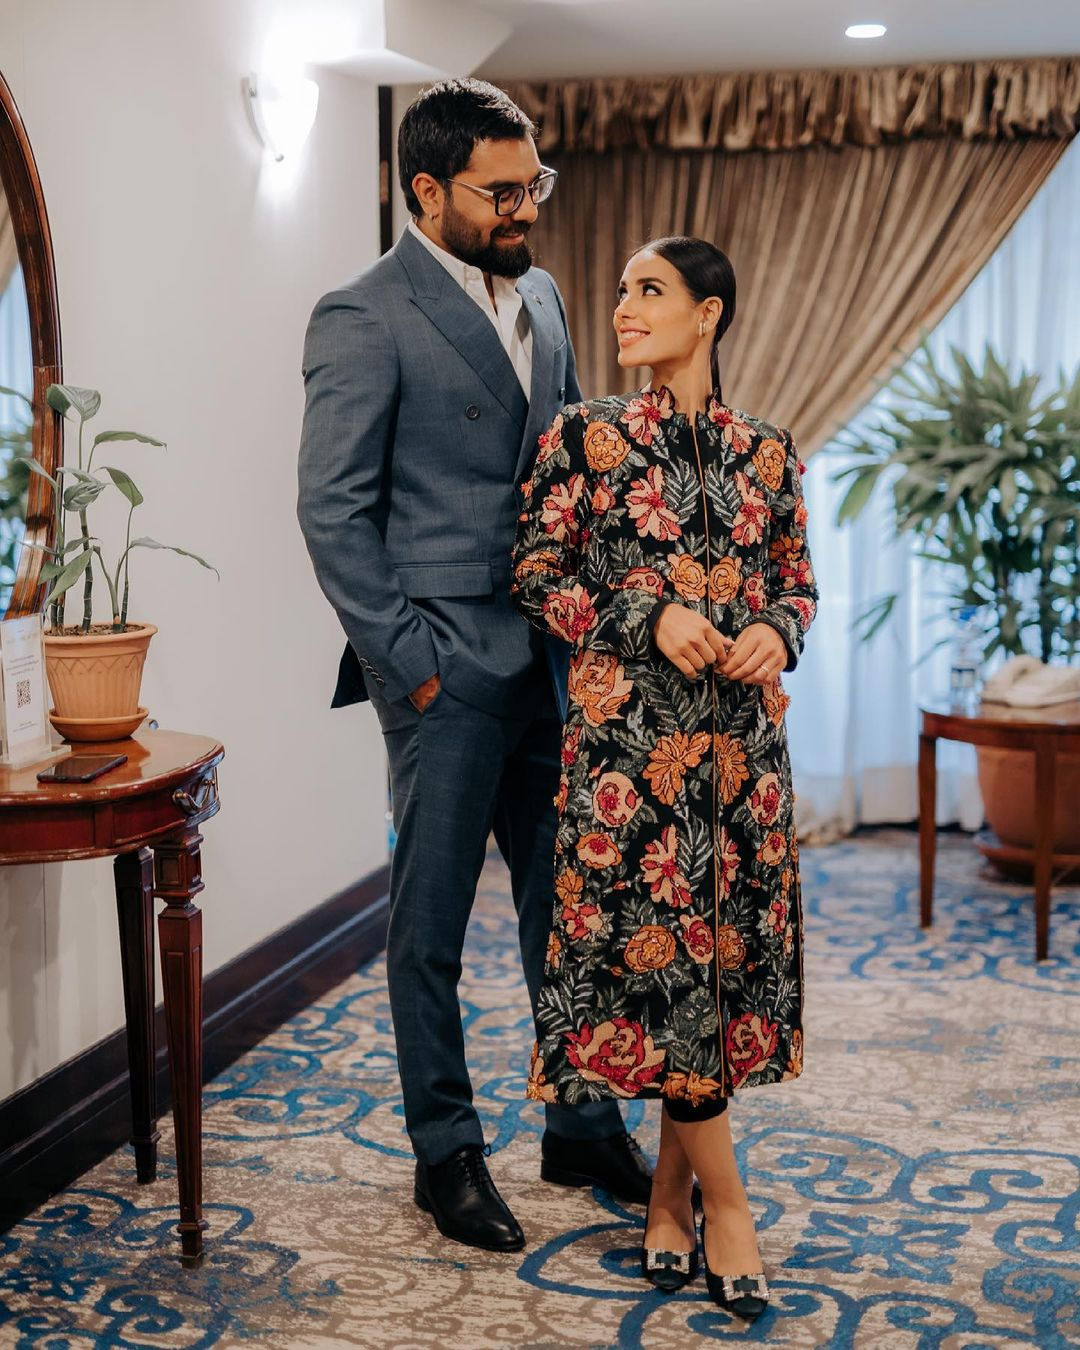 The couple that always remains in the limelight, Iqra Aziz and Yasir Hussain make a beautiful couple together while sharing an awesome chemistry. They know how to make every moment special even out of the most normal days. The way Yasir loves Iqra and the expressions that she gets on her face following this affection is something worth seeing. We know that Iqra is a brilliant actress and she has done marvelous job in each of her projects. These days, she is playing the role of Ameera in the drama serial Raqeeb Se that goes on air on HUM TV. On the other hand, Yasir is also a very talented actor and host who is known well for the controversies he becomes a part of on social media. Despite the fact people criticize him for being so blunt, he has got a huge fan following. Well… here we have got some of the latest yet the cutest clicks of Iqra and Yasir giving out romantic vibes. Check out these pictures!  Iqra Aziz and Yasir Hussain Give Out Romantic Vibes In These Cute Clicks  Iqra and Yasir are incomplete without each other and their posts on social media are proof of that. They have unconditional love between them and that's the reason their bond stands out as a celeb couple. Here we have got some of the most adorable clicks of the couple in which they are giving out romantic vibes. Take a look at these pictures!     From formal occasions to the casual routine clicks at home, Iqra and Yasir have been setting the perfect couple goals. In the recent click, Iqra's floral attire is grabbing our attention instantly as she flaunts grace along with her husband. Moreover, they make sure that whatever they wear, makes them look exceptional specifically when it comes to gatherings.  So, which one of these looks do you like the most of Iqra Aziz and Yasir Hussain? Don't forget to share your valuable opinion with us!